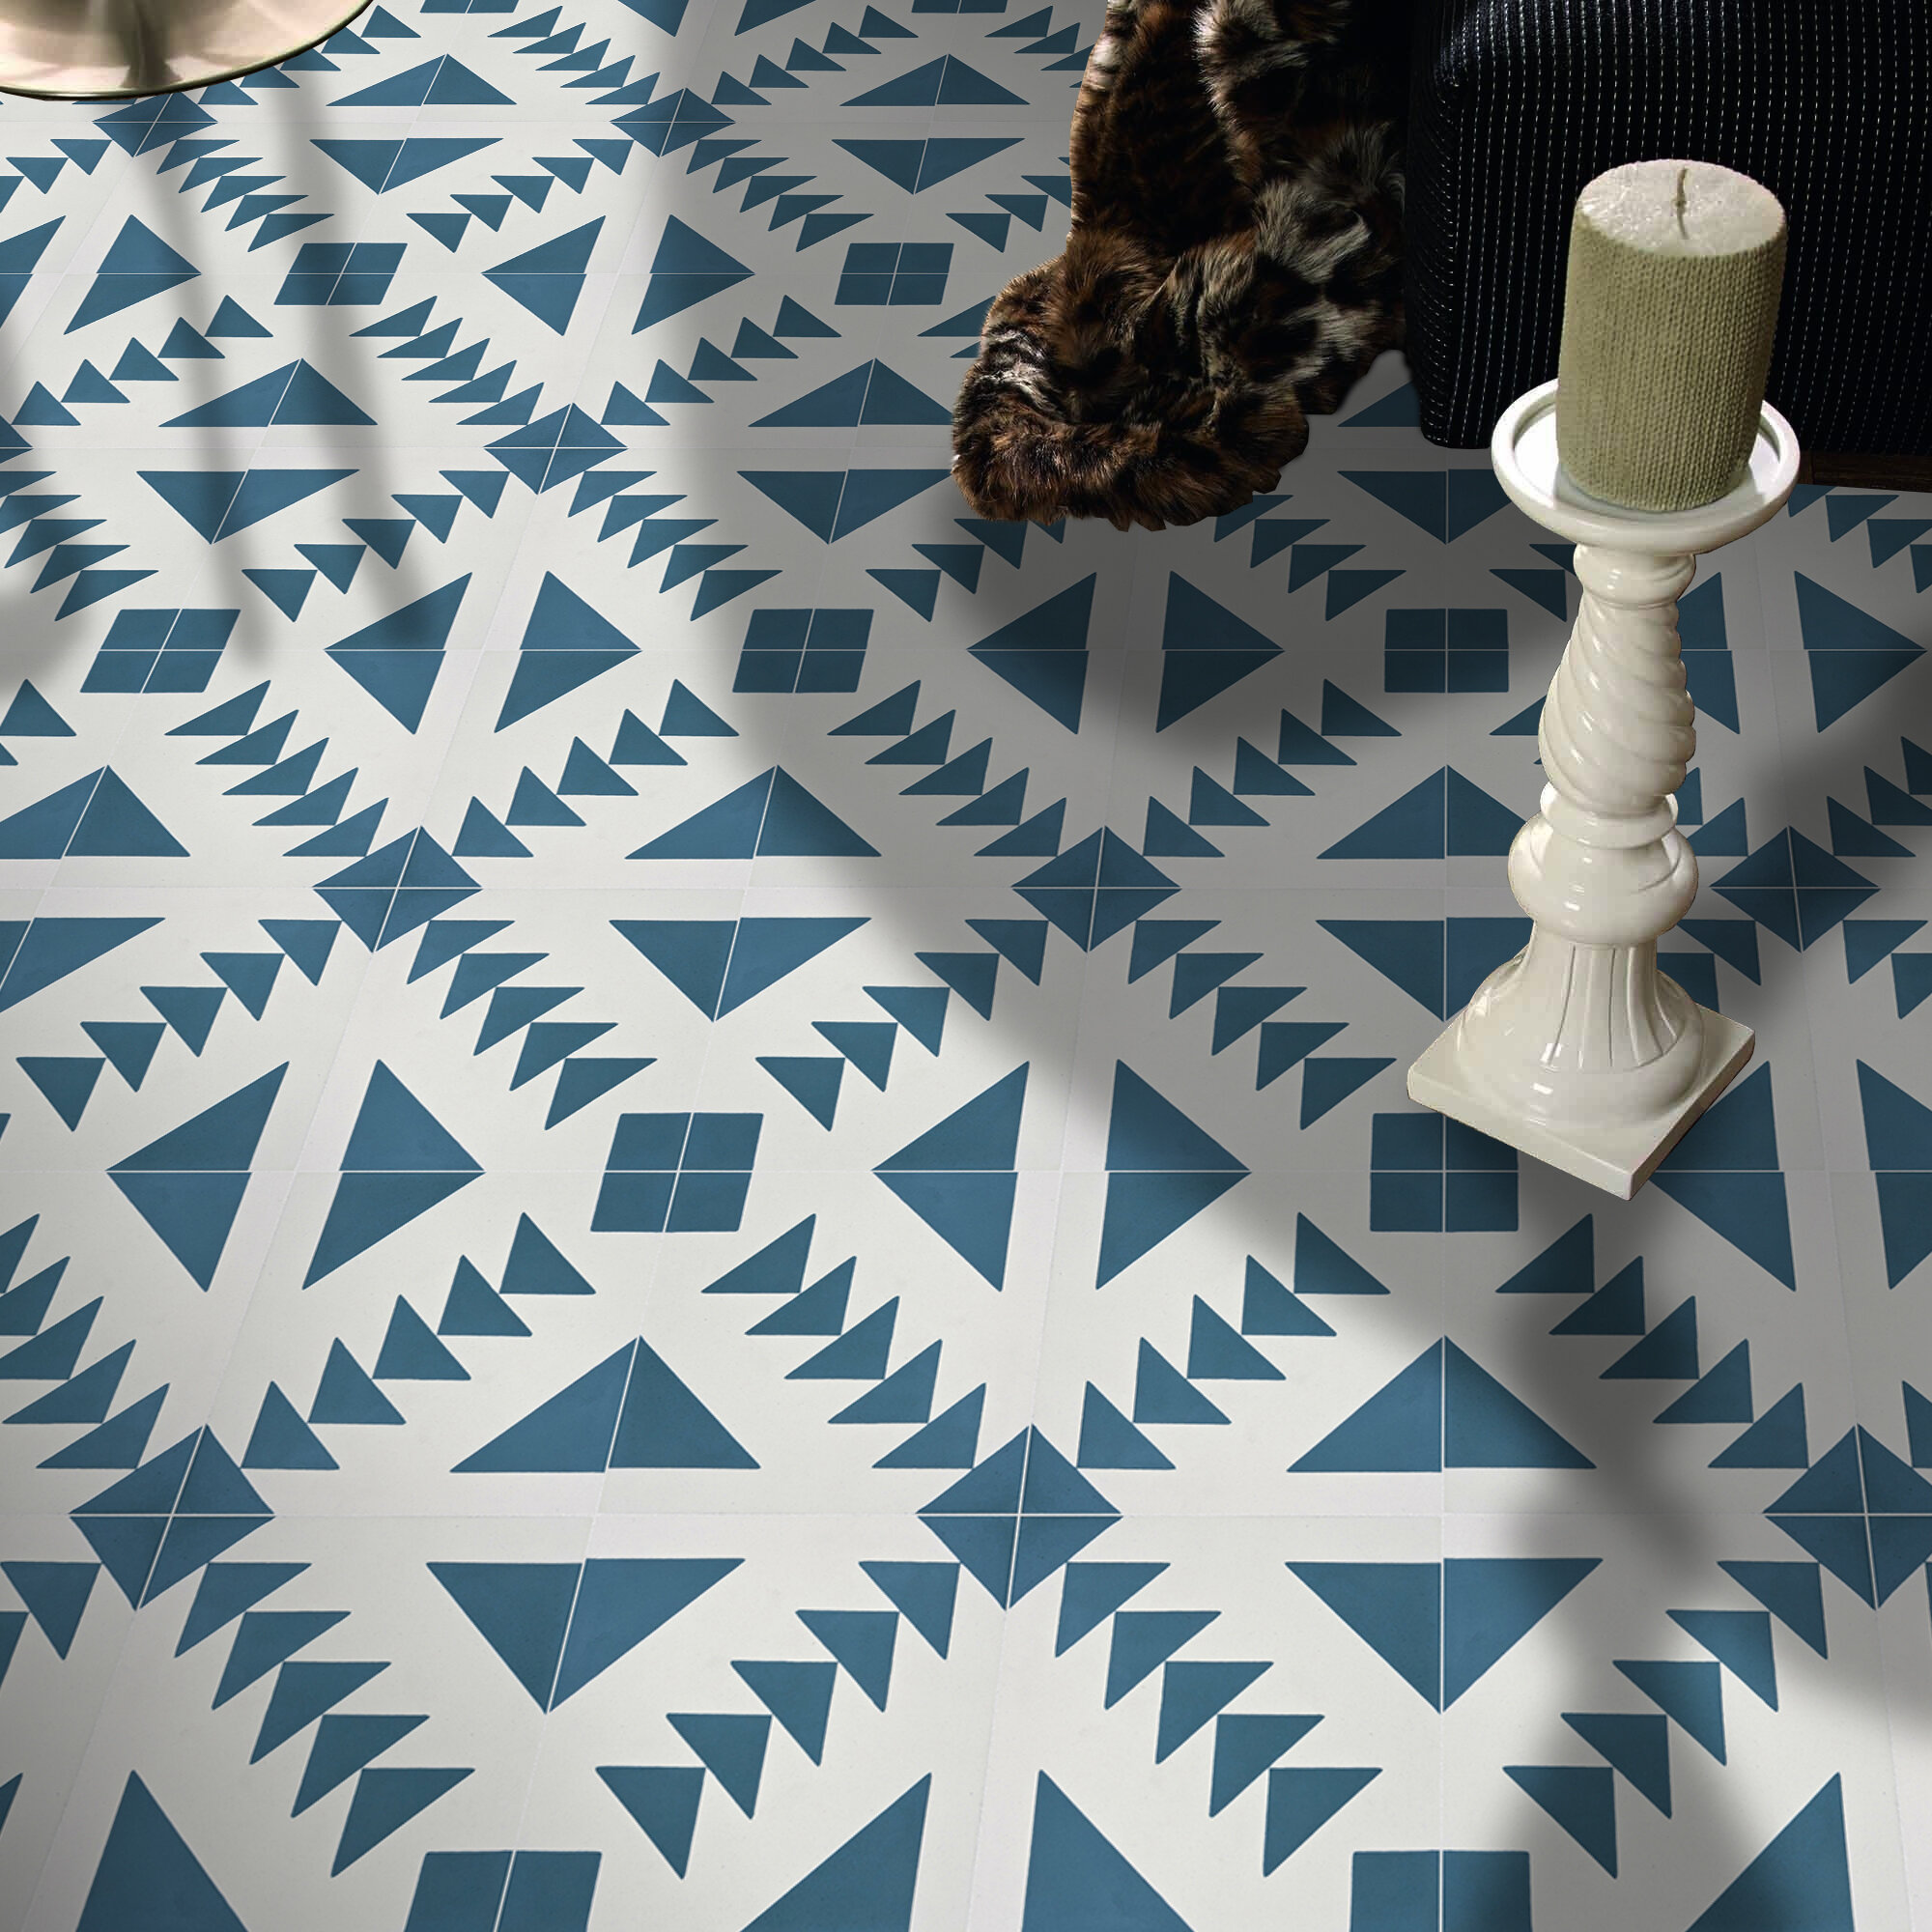 Moroccan Mosaic Tile House Tadla 8 X 8 Cement Patterned Wall Floor Tile Reviews Wayfair